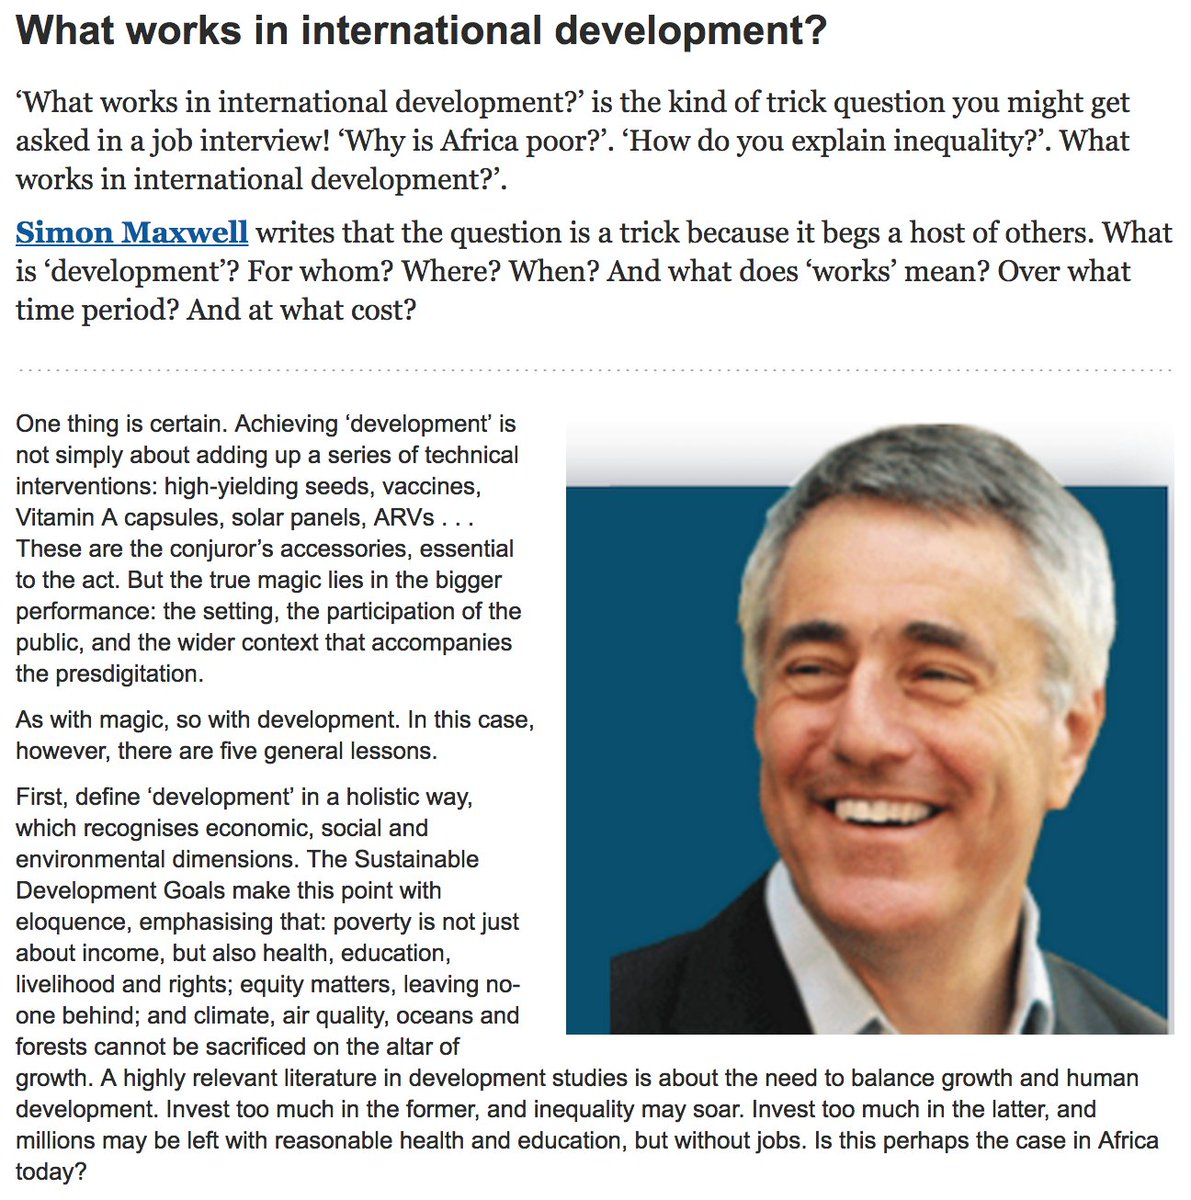 What works in #globaldev? @SimonMaxwell001 on five general lessons to answer this &quot;trick question&quot; #FLwhatworks  http://www. whatworks.uio.no/blog/2017/what -works-in-international-development.html &nbsp; … <br>http://pic.twitter.com/5H19zbDJTo